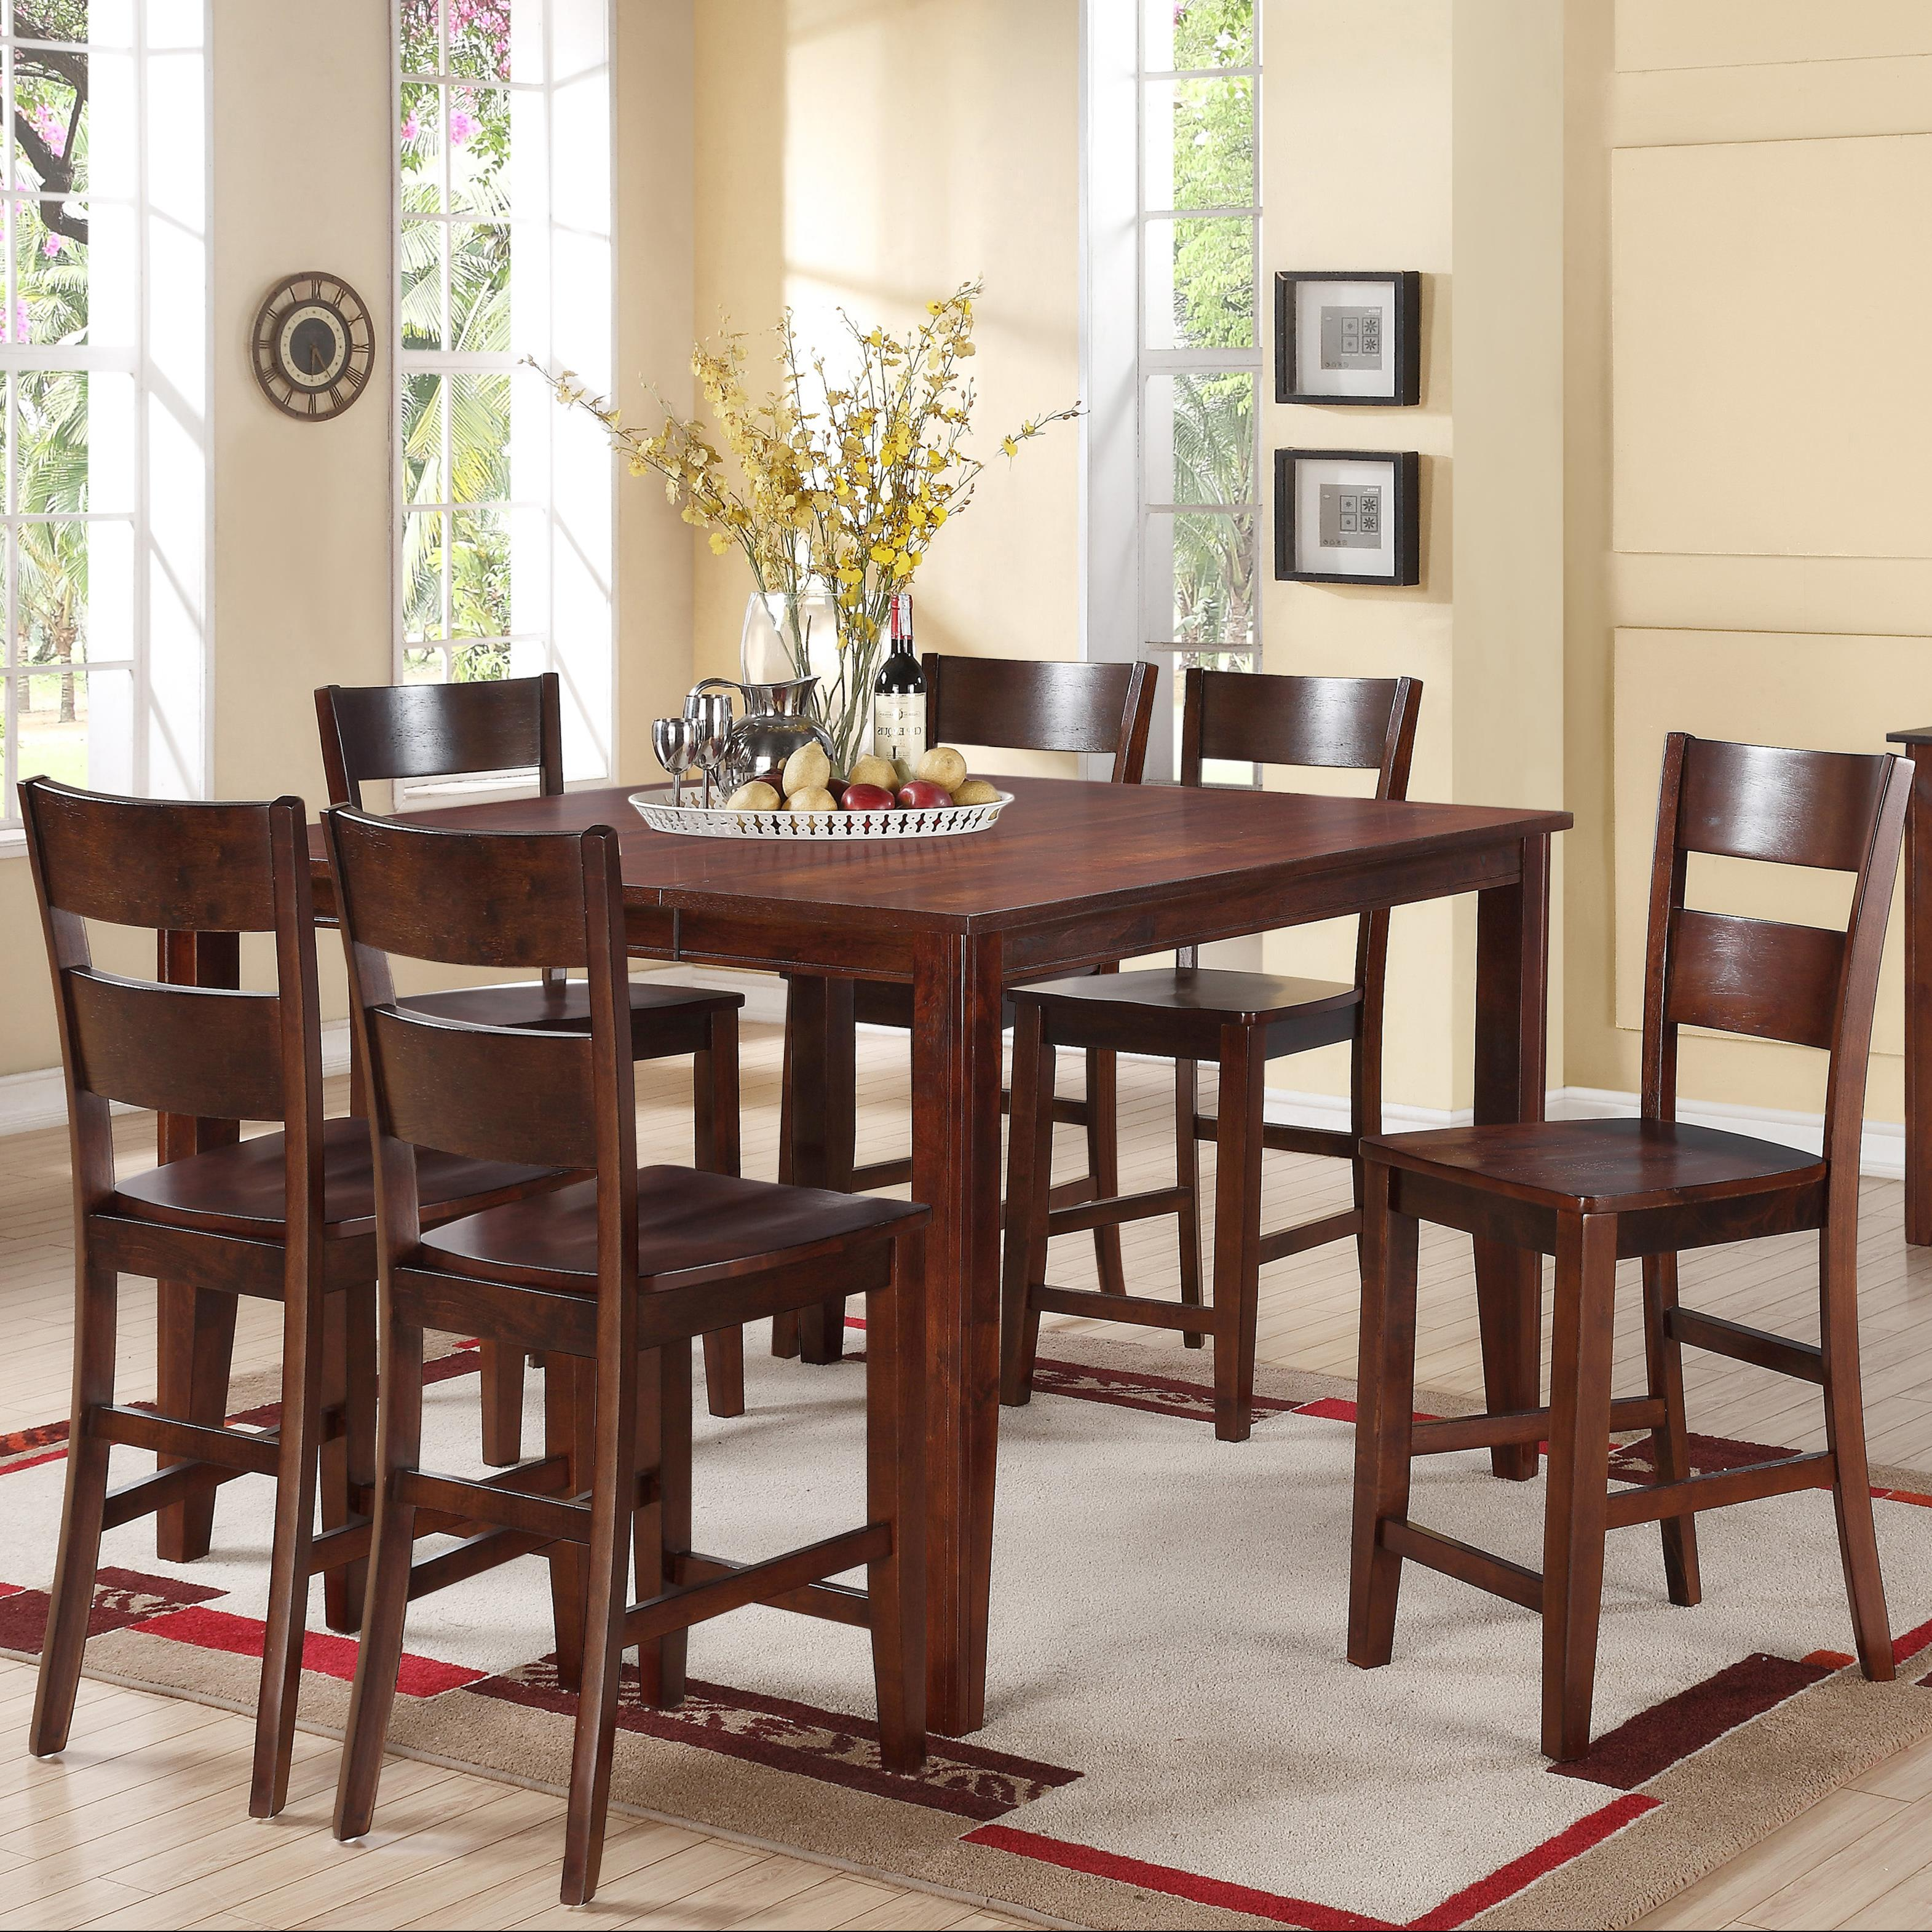 holland house 7 piece counter height dining set item number 8203tpb5454